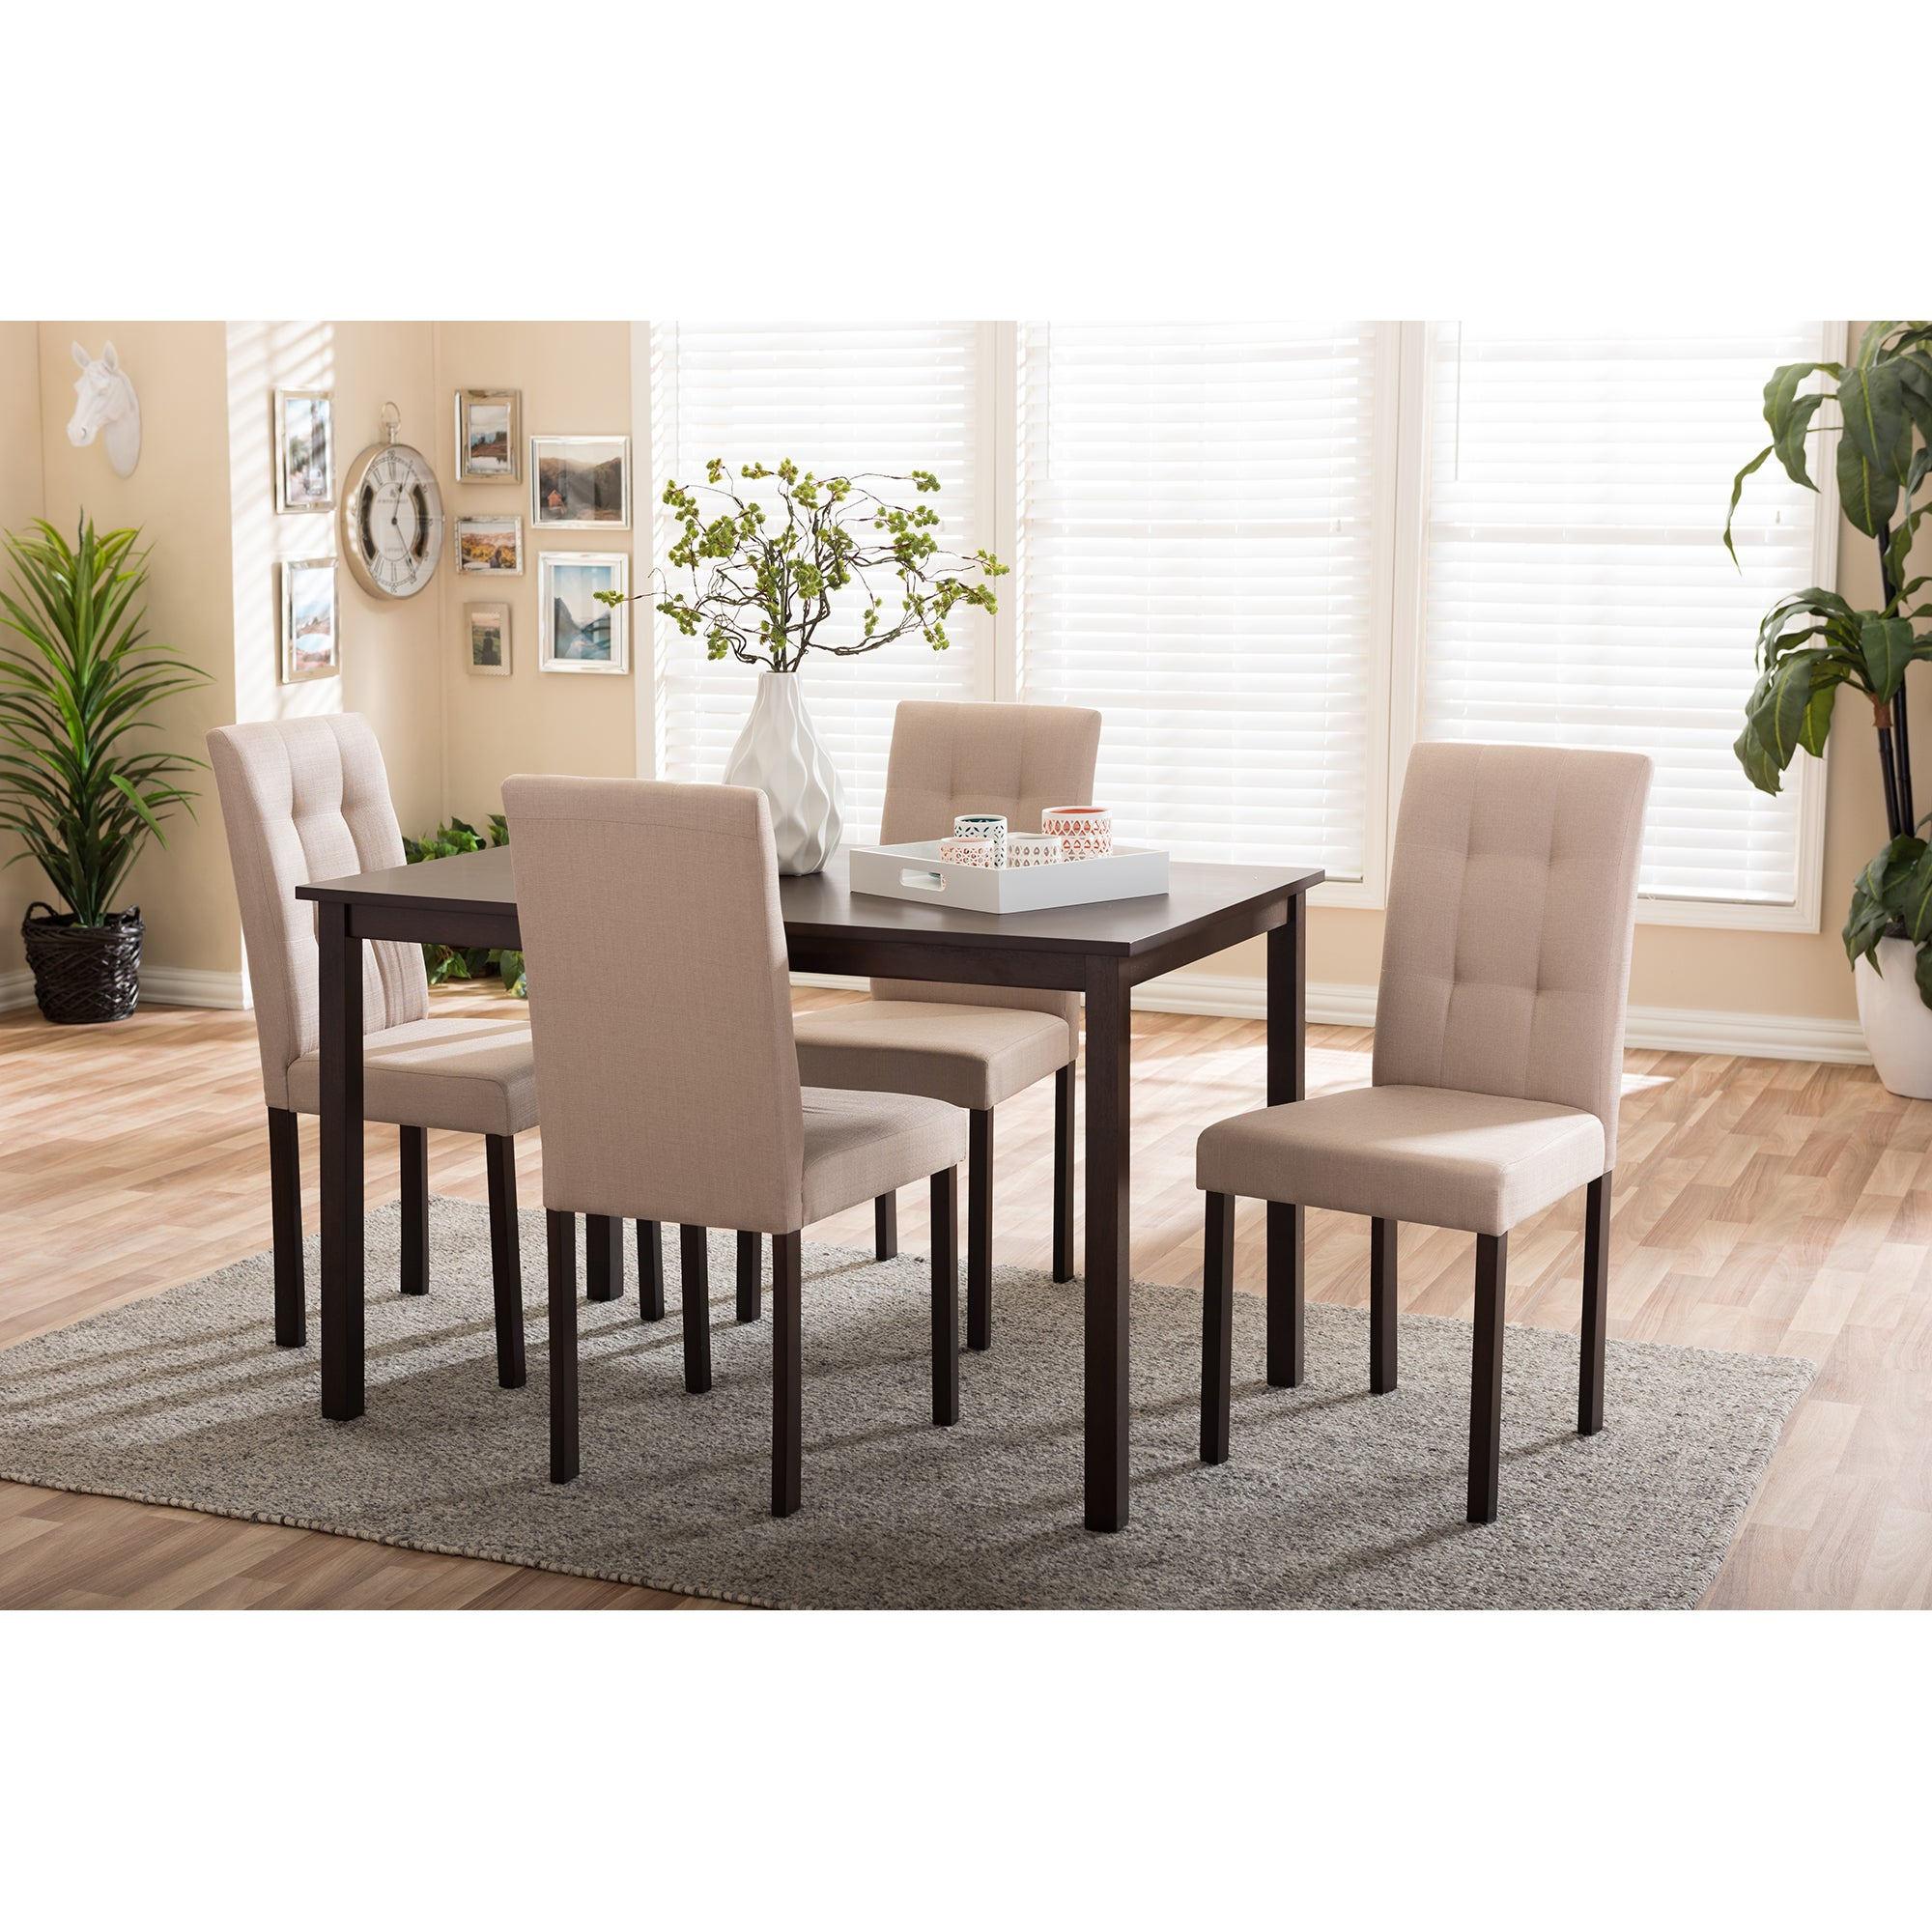 Porch U0026 Den Devin Contemporary 5 Piece Beige Fabric Upholstered  Grid Tufting Dining Set